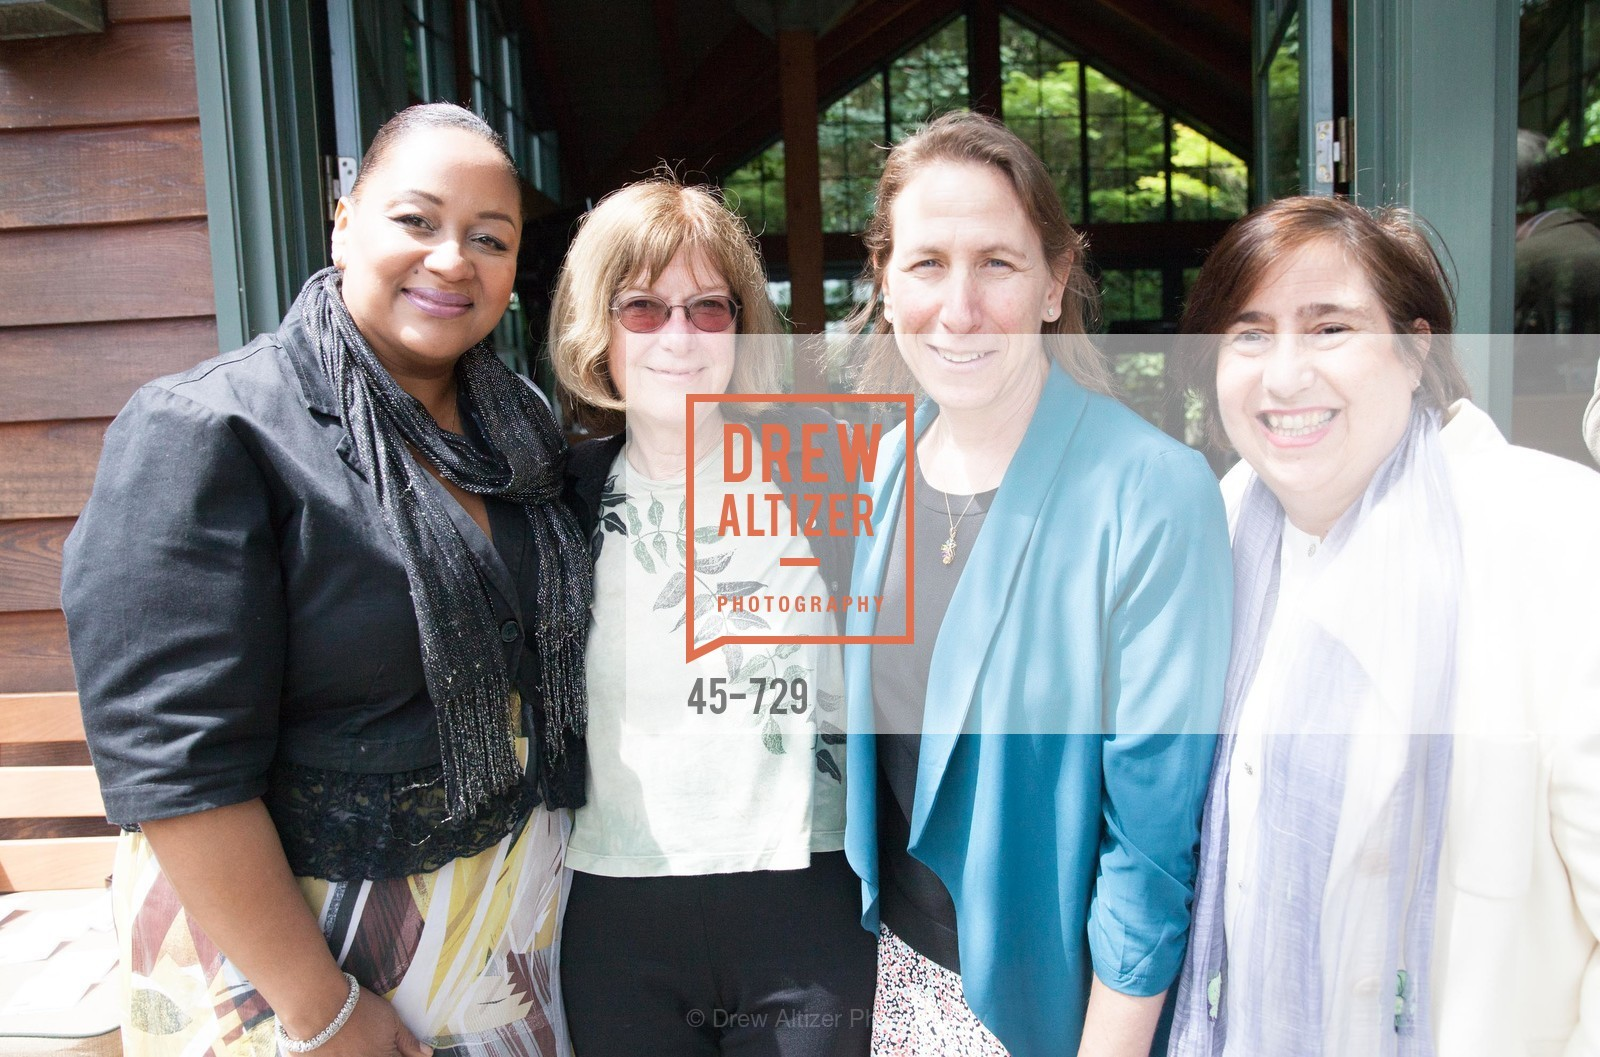 Gina Former, Mary Power, Sarah Kupferberg, Jennifer Niedermeyer, THE TRUST FOR PUBLIC LAND Luncheon Hosted by THE DREVER FAMILY FOUNDATION, US, May 15th, 2015,Drew Altizer, Drew Altizer Photography, full-service agency, private events, San Francisco photographer, photographer california